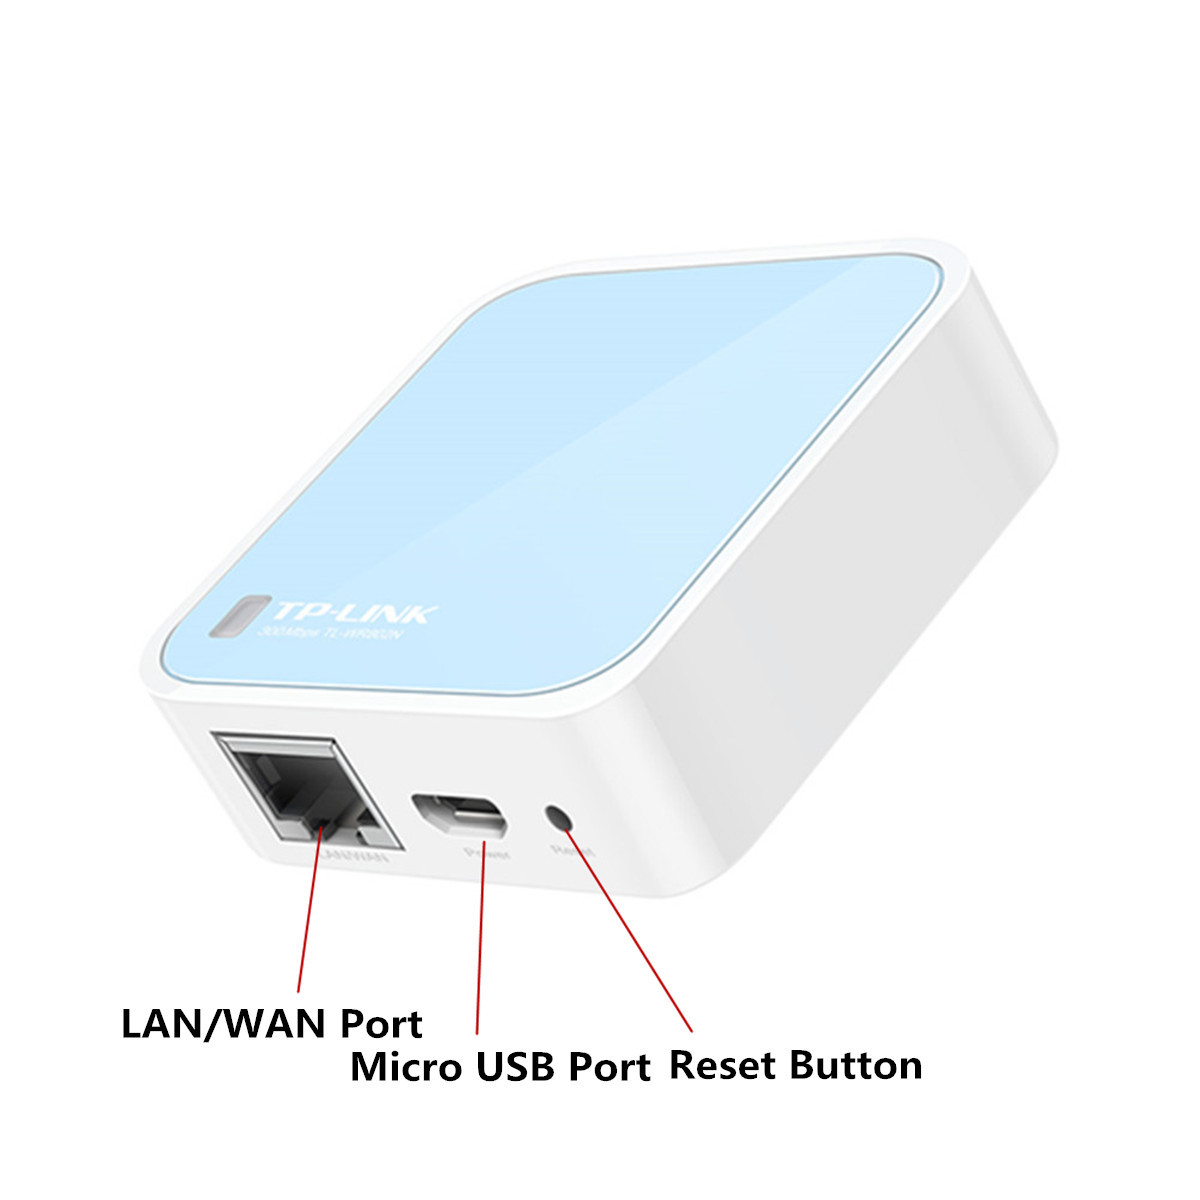 TP-Link TL-WR802N 2.4GHz 300Mbps Wireless WiFi Router Repeater AP for Hotel Travel Home